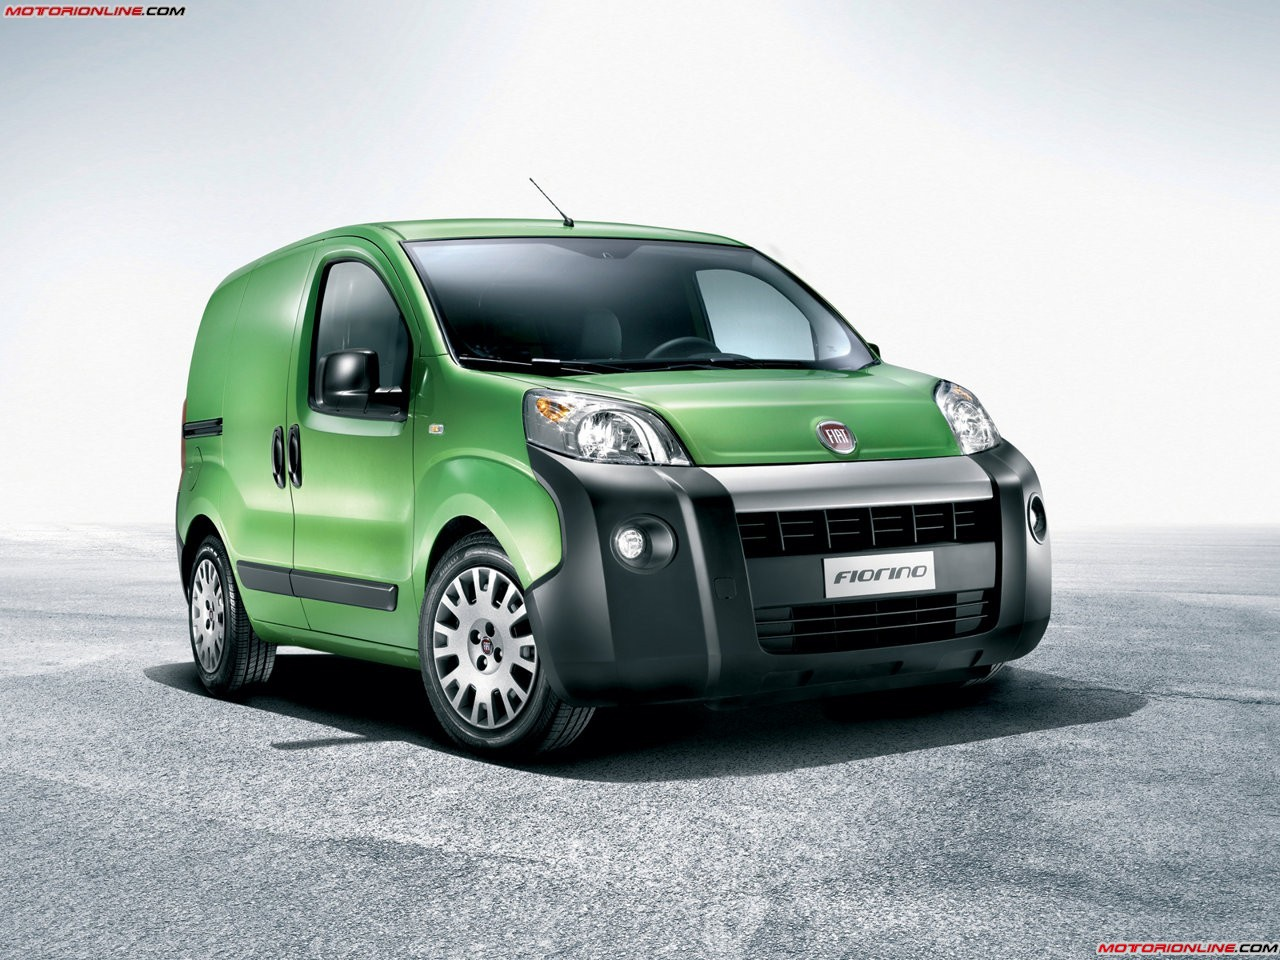 Fiat Fiorino 2008 photo - 2